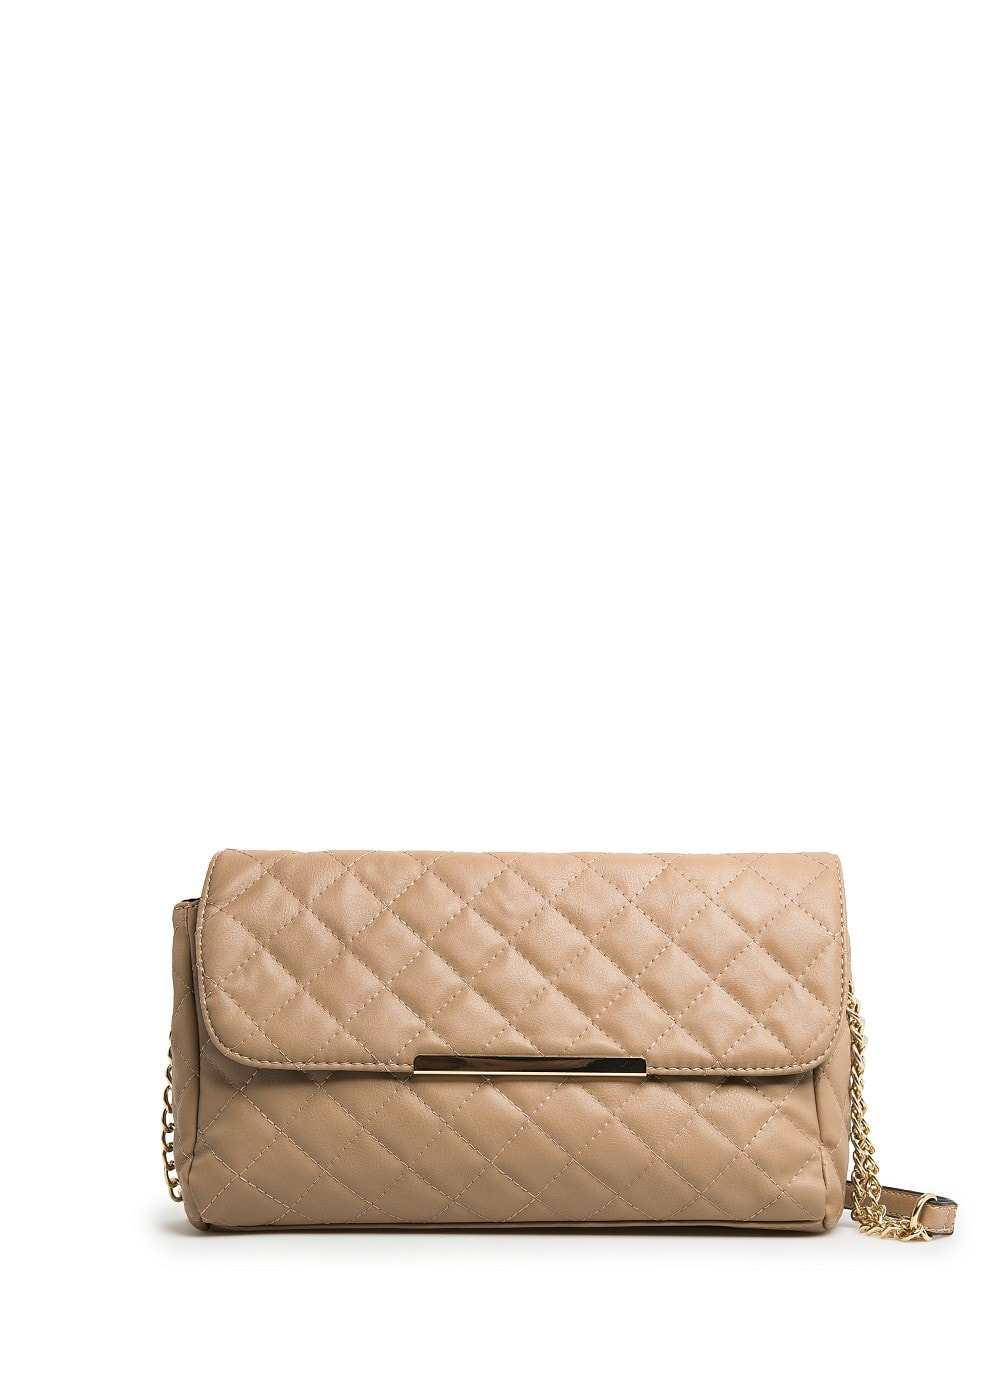 METAL DETAIL QUILTED BAG